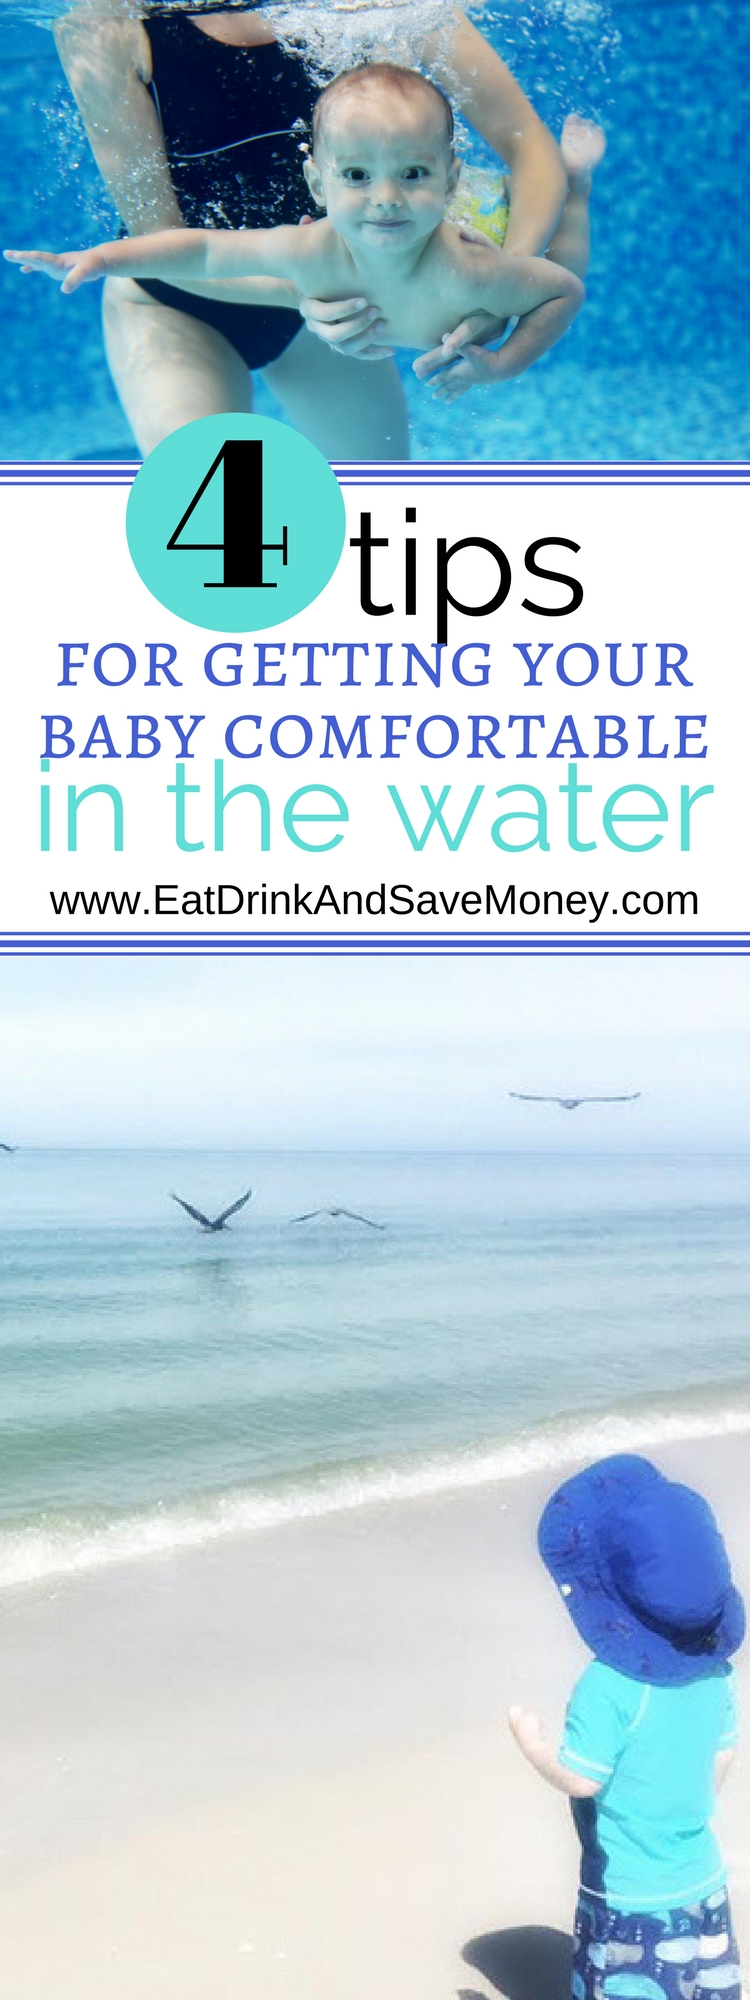 4 Tips for Getting Your Baby Comfortable in the Water | Eat, Drink, and Save Money